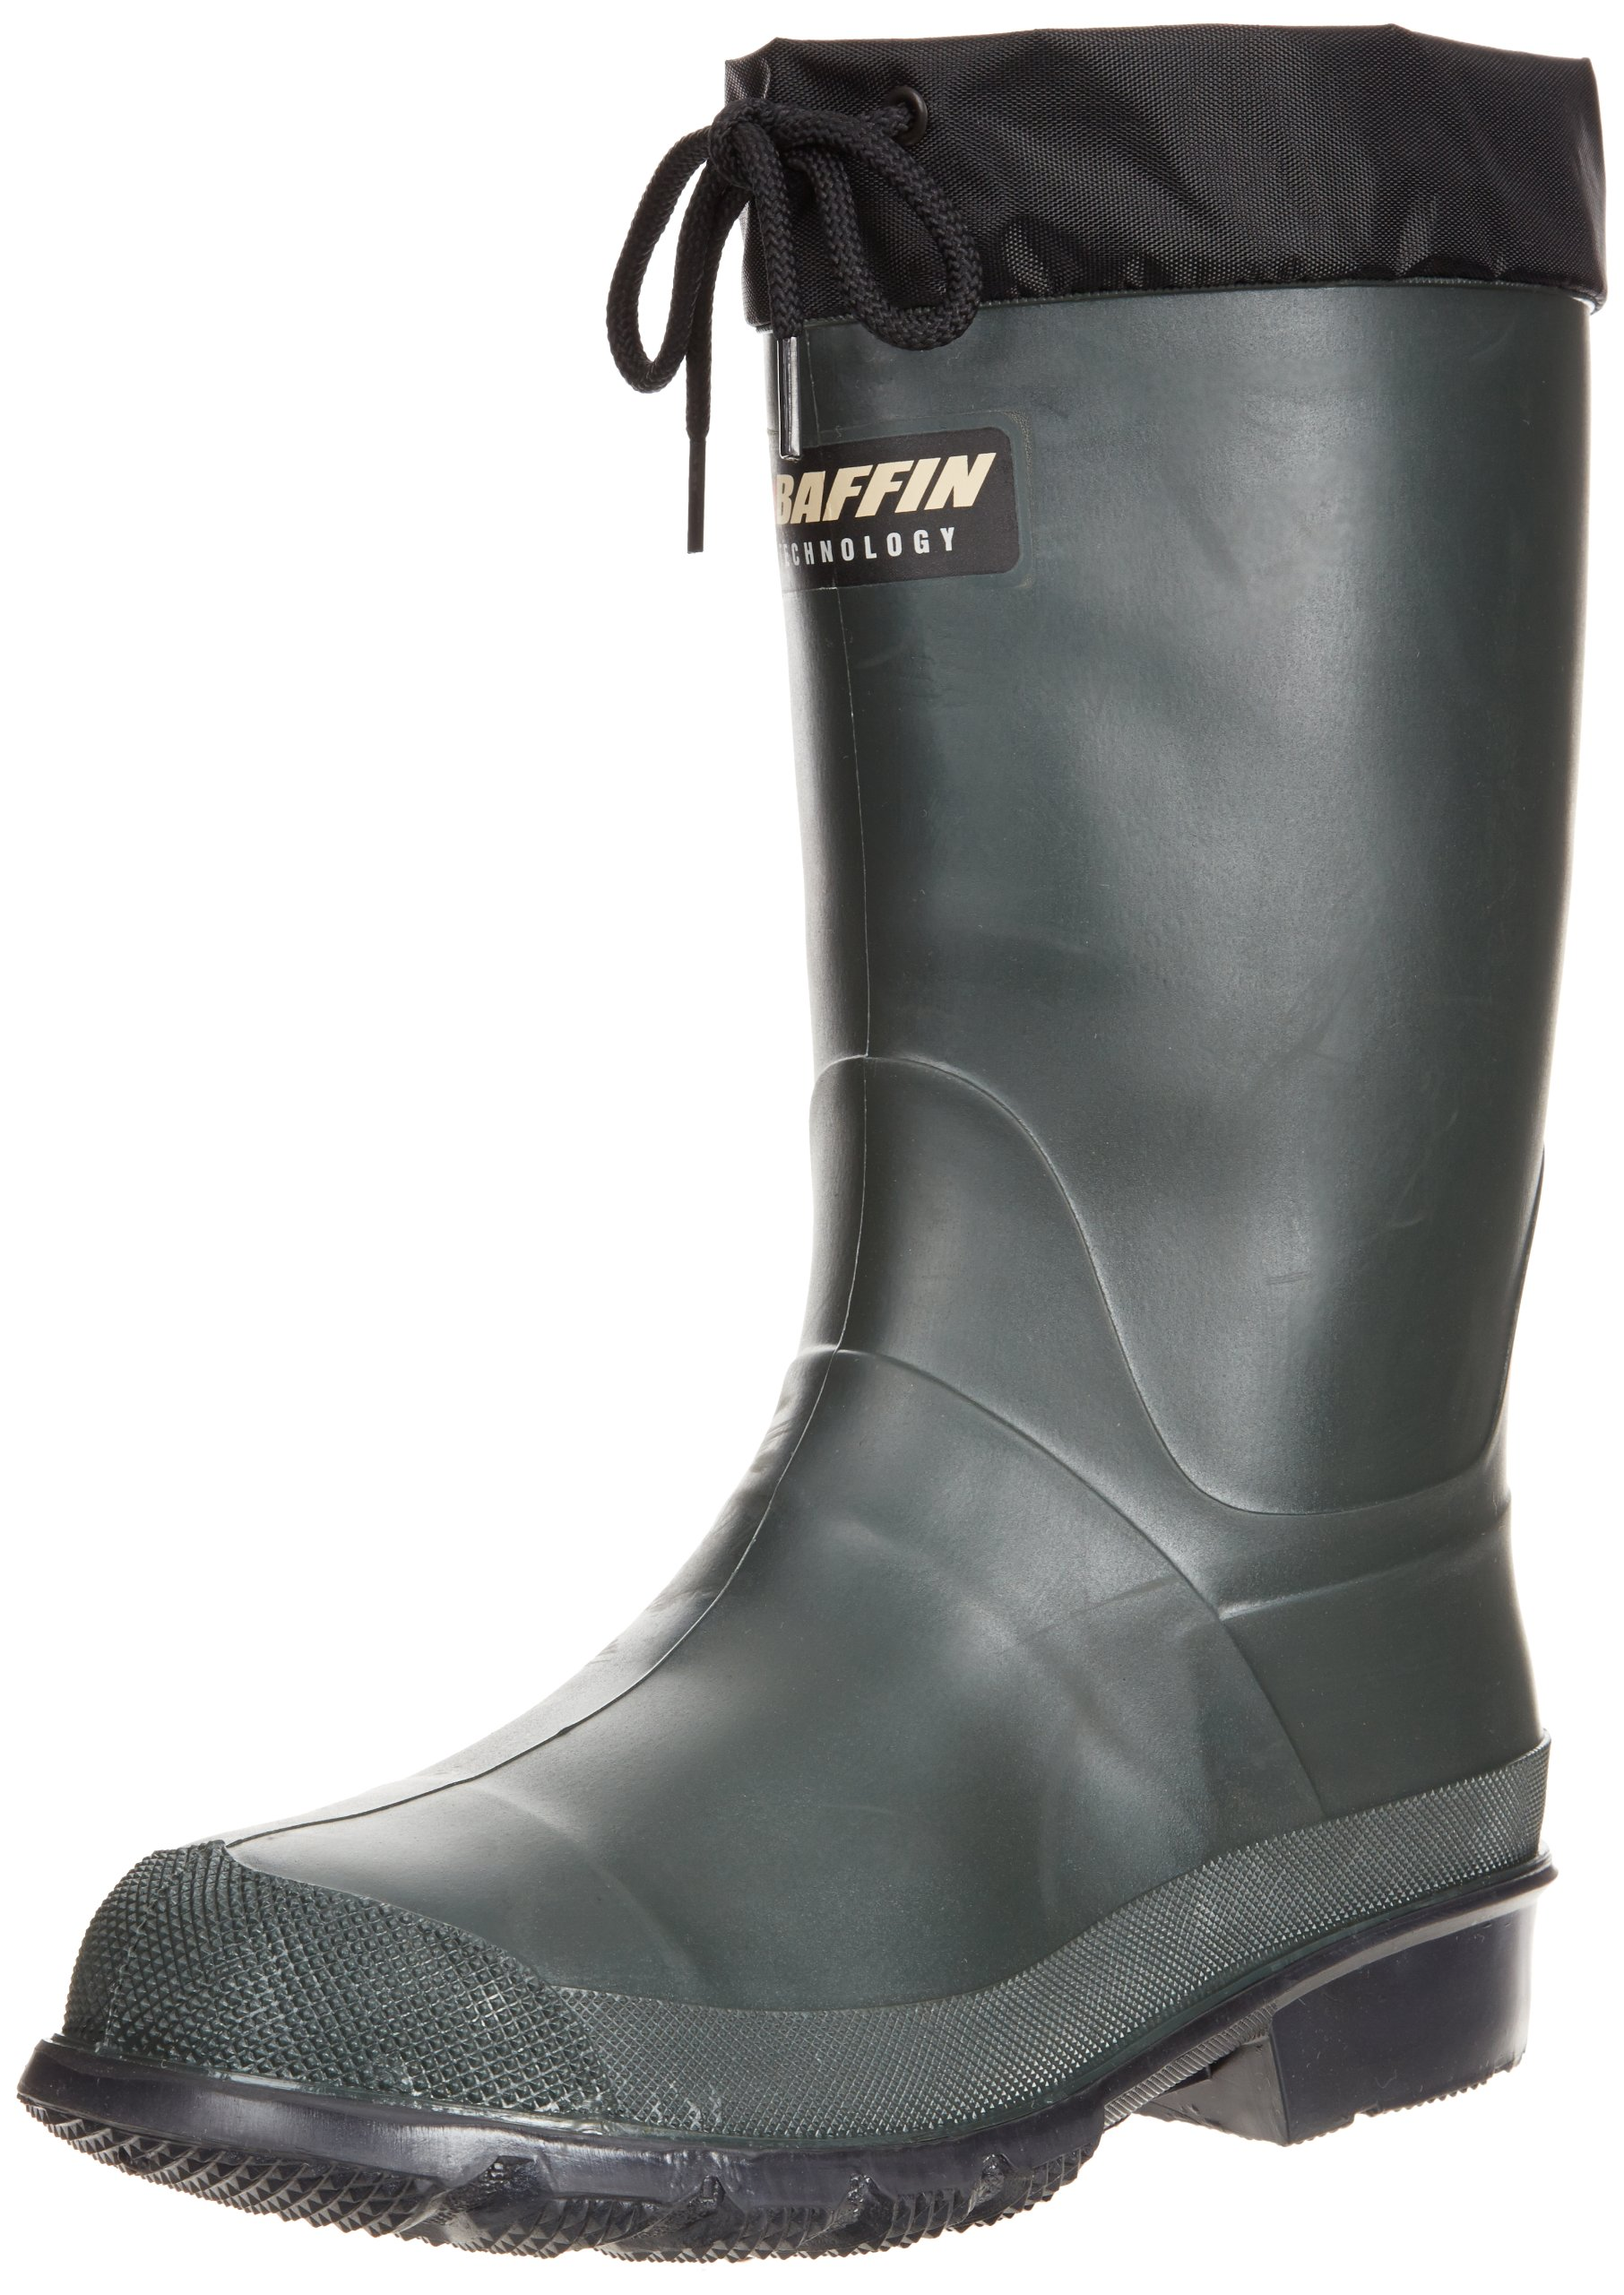 Baffin Men's Hunter PT Forest Black Hunting Boot,Forest/Black,8 M US by Baffin